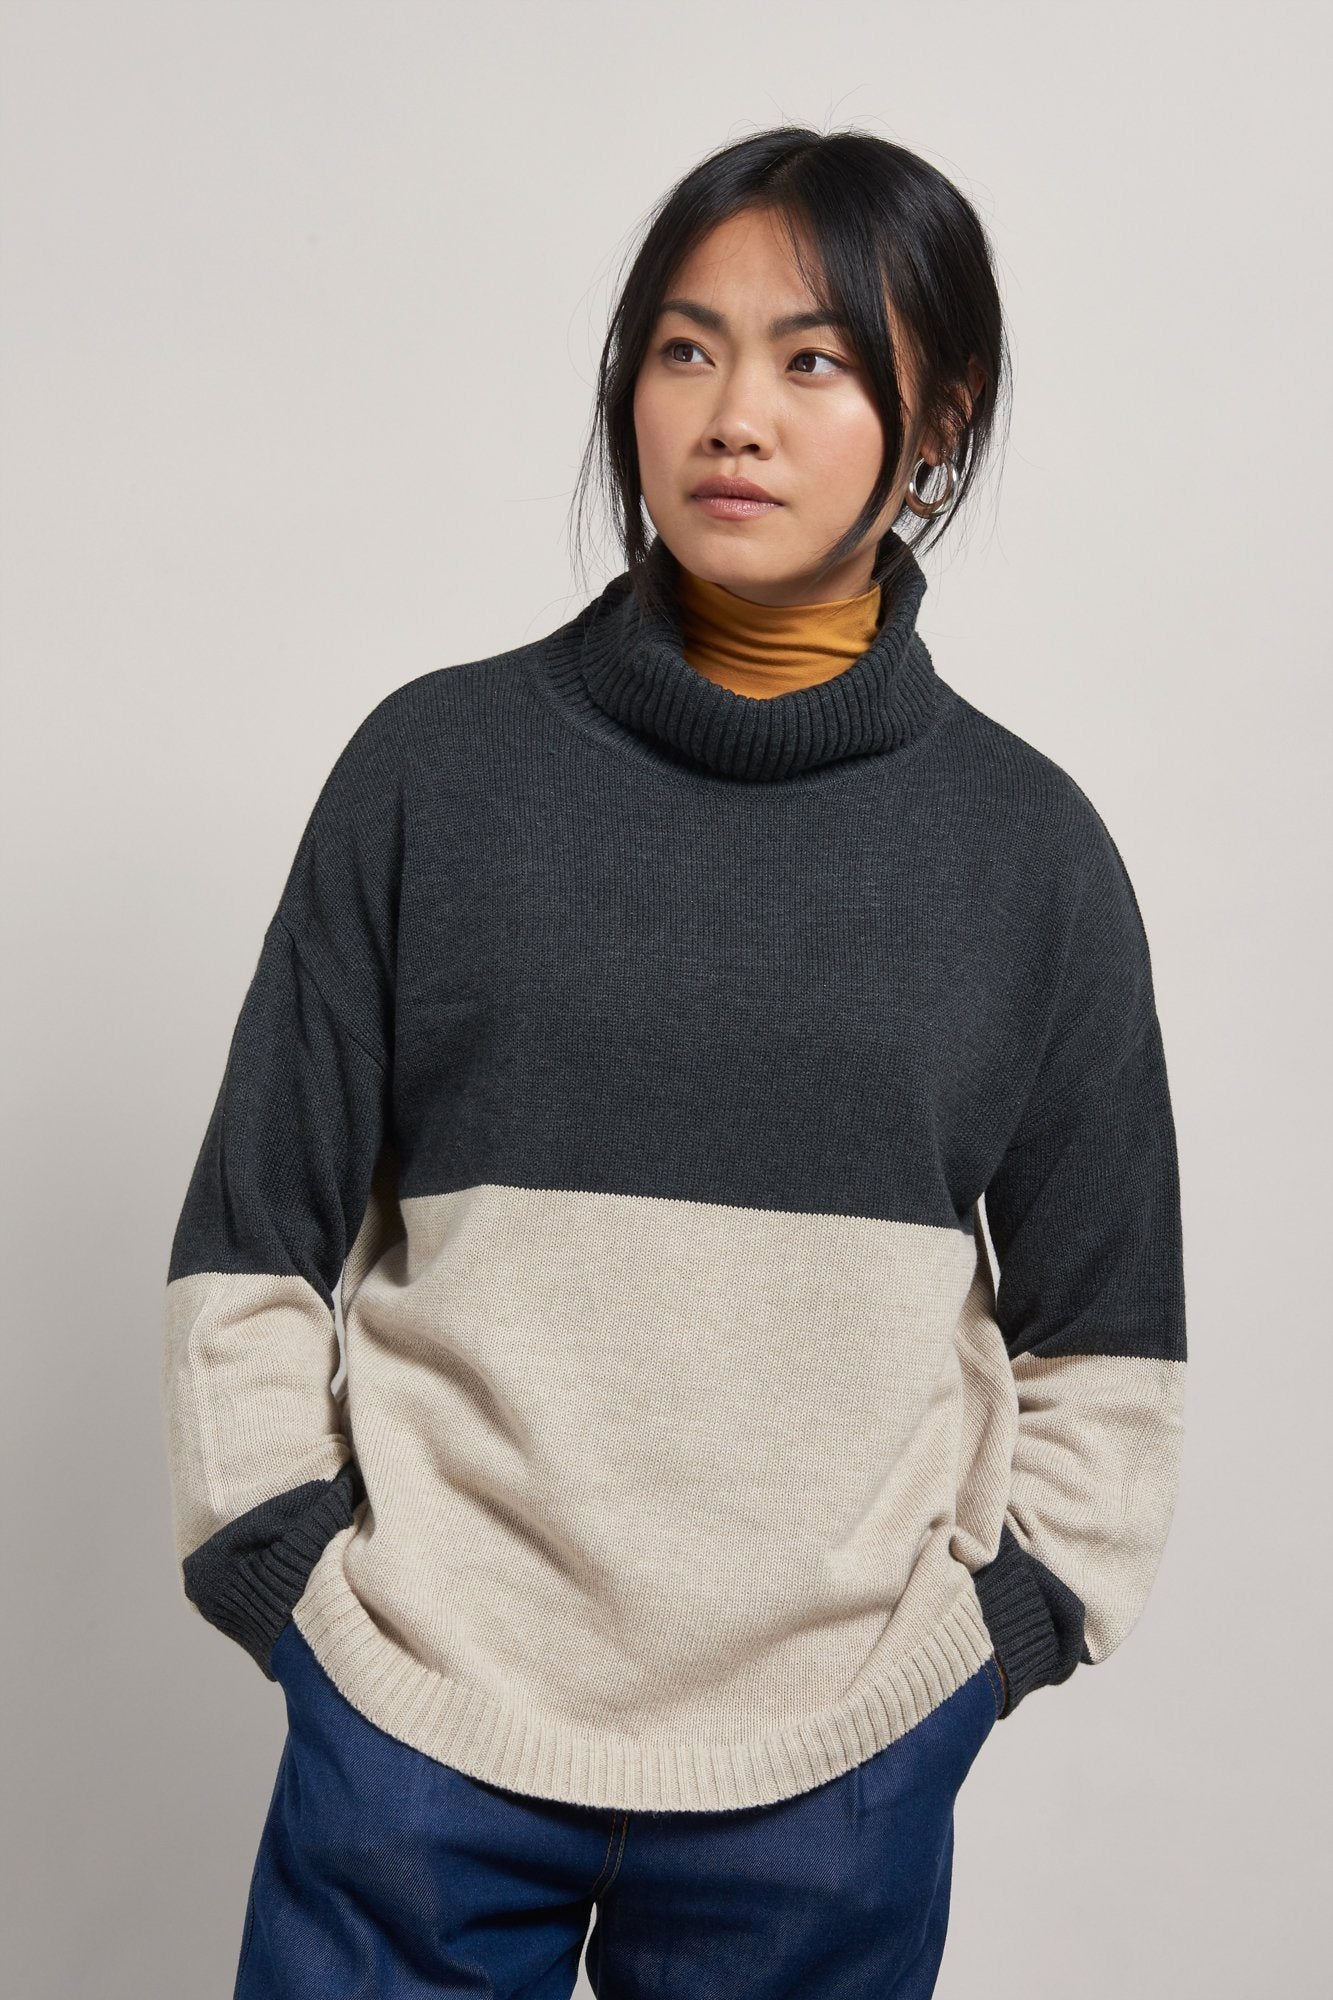 Jumper - REMIA Organic Cotton Jumper Coal